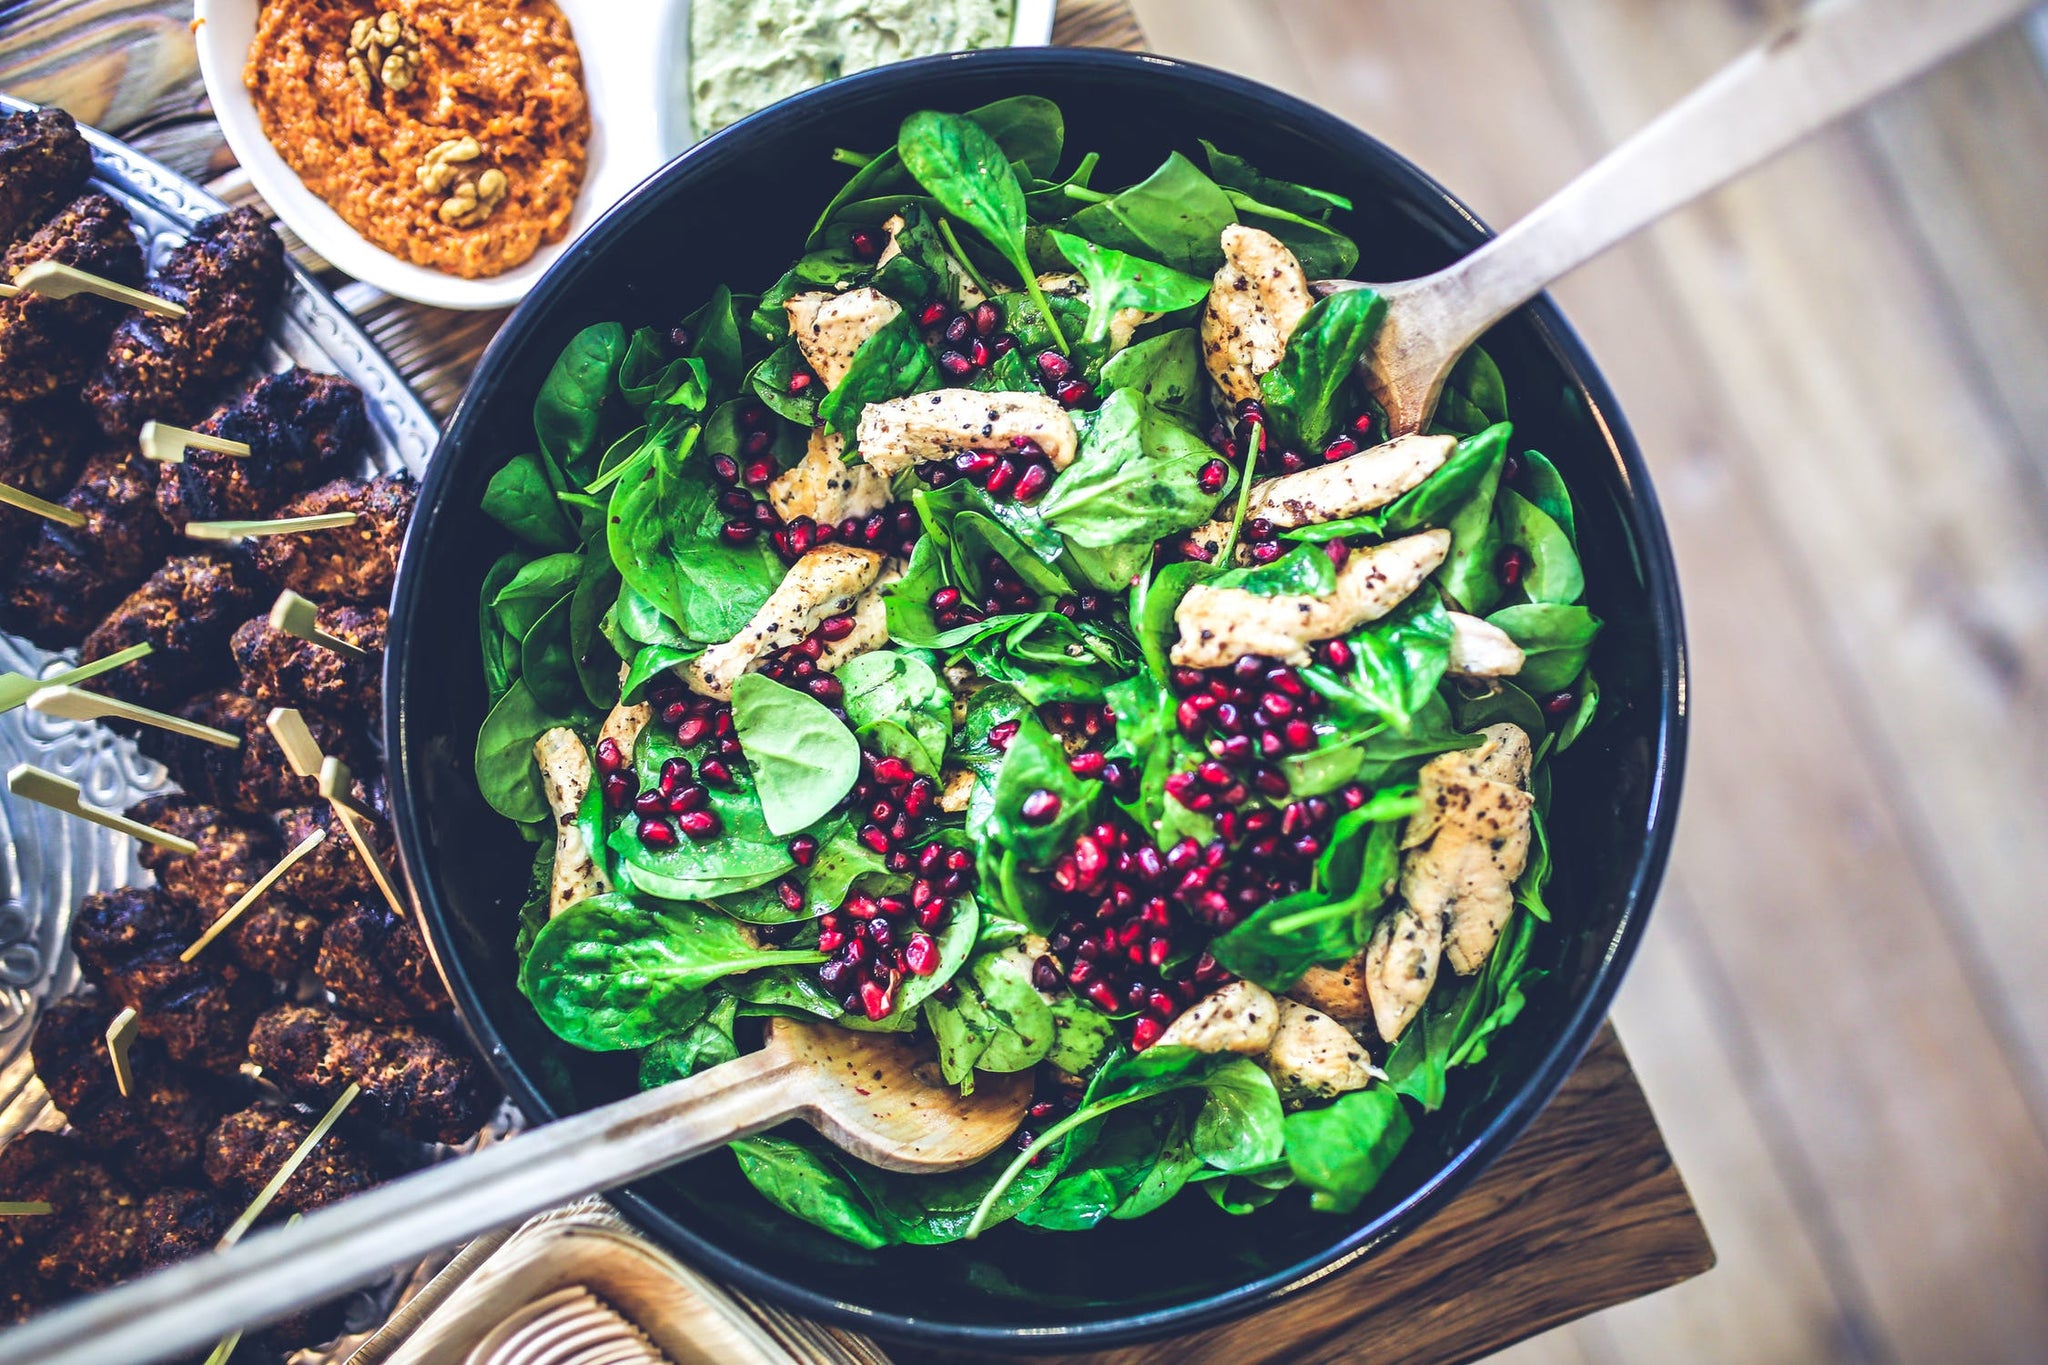 Why You Should Add Spinach to Your Next Meal